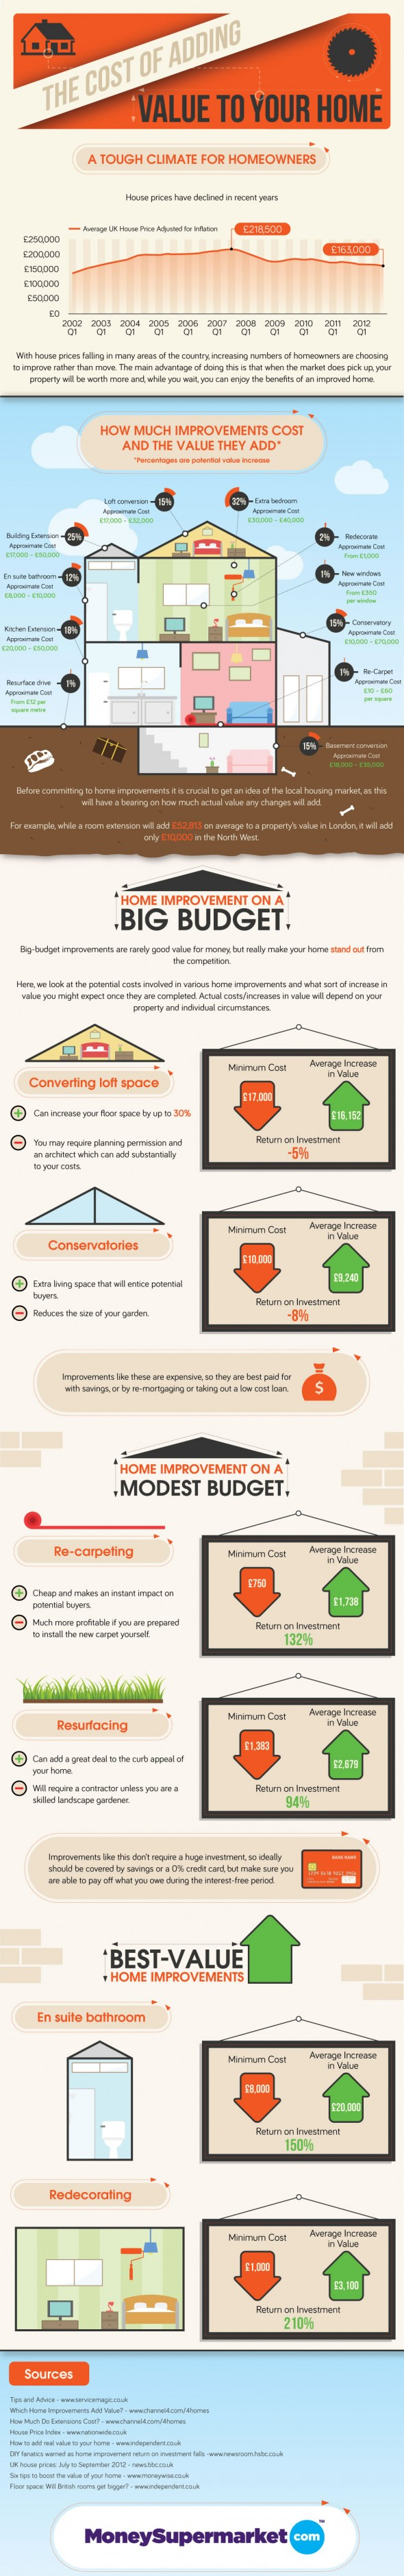 info1 - How to maximize on your small home Improvement budget